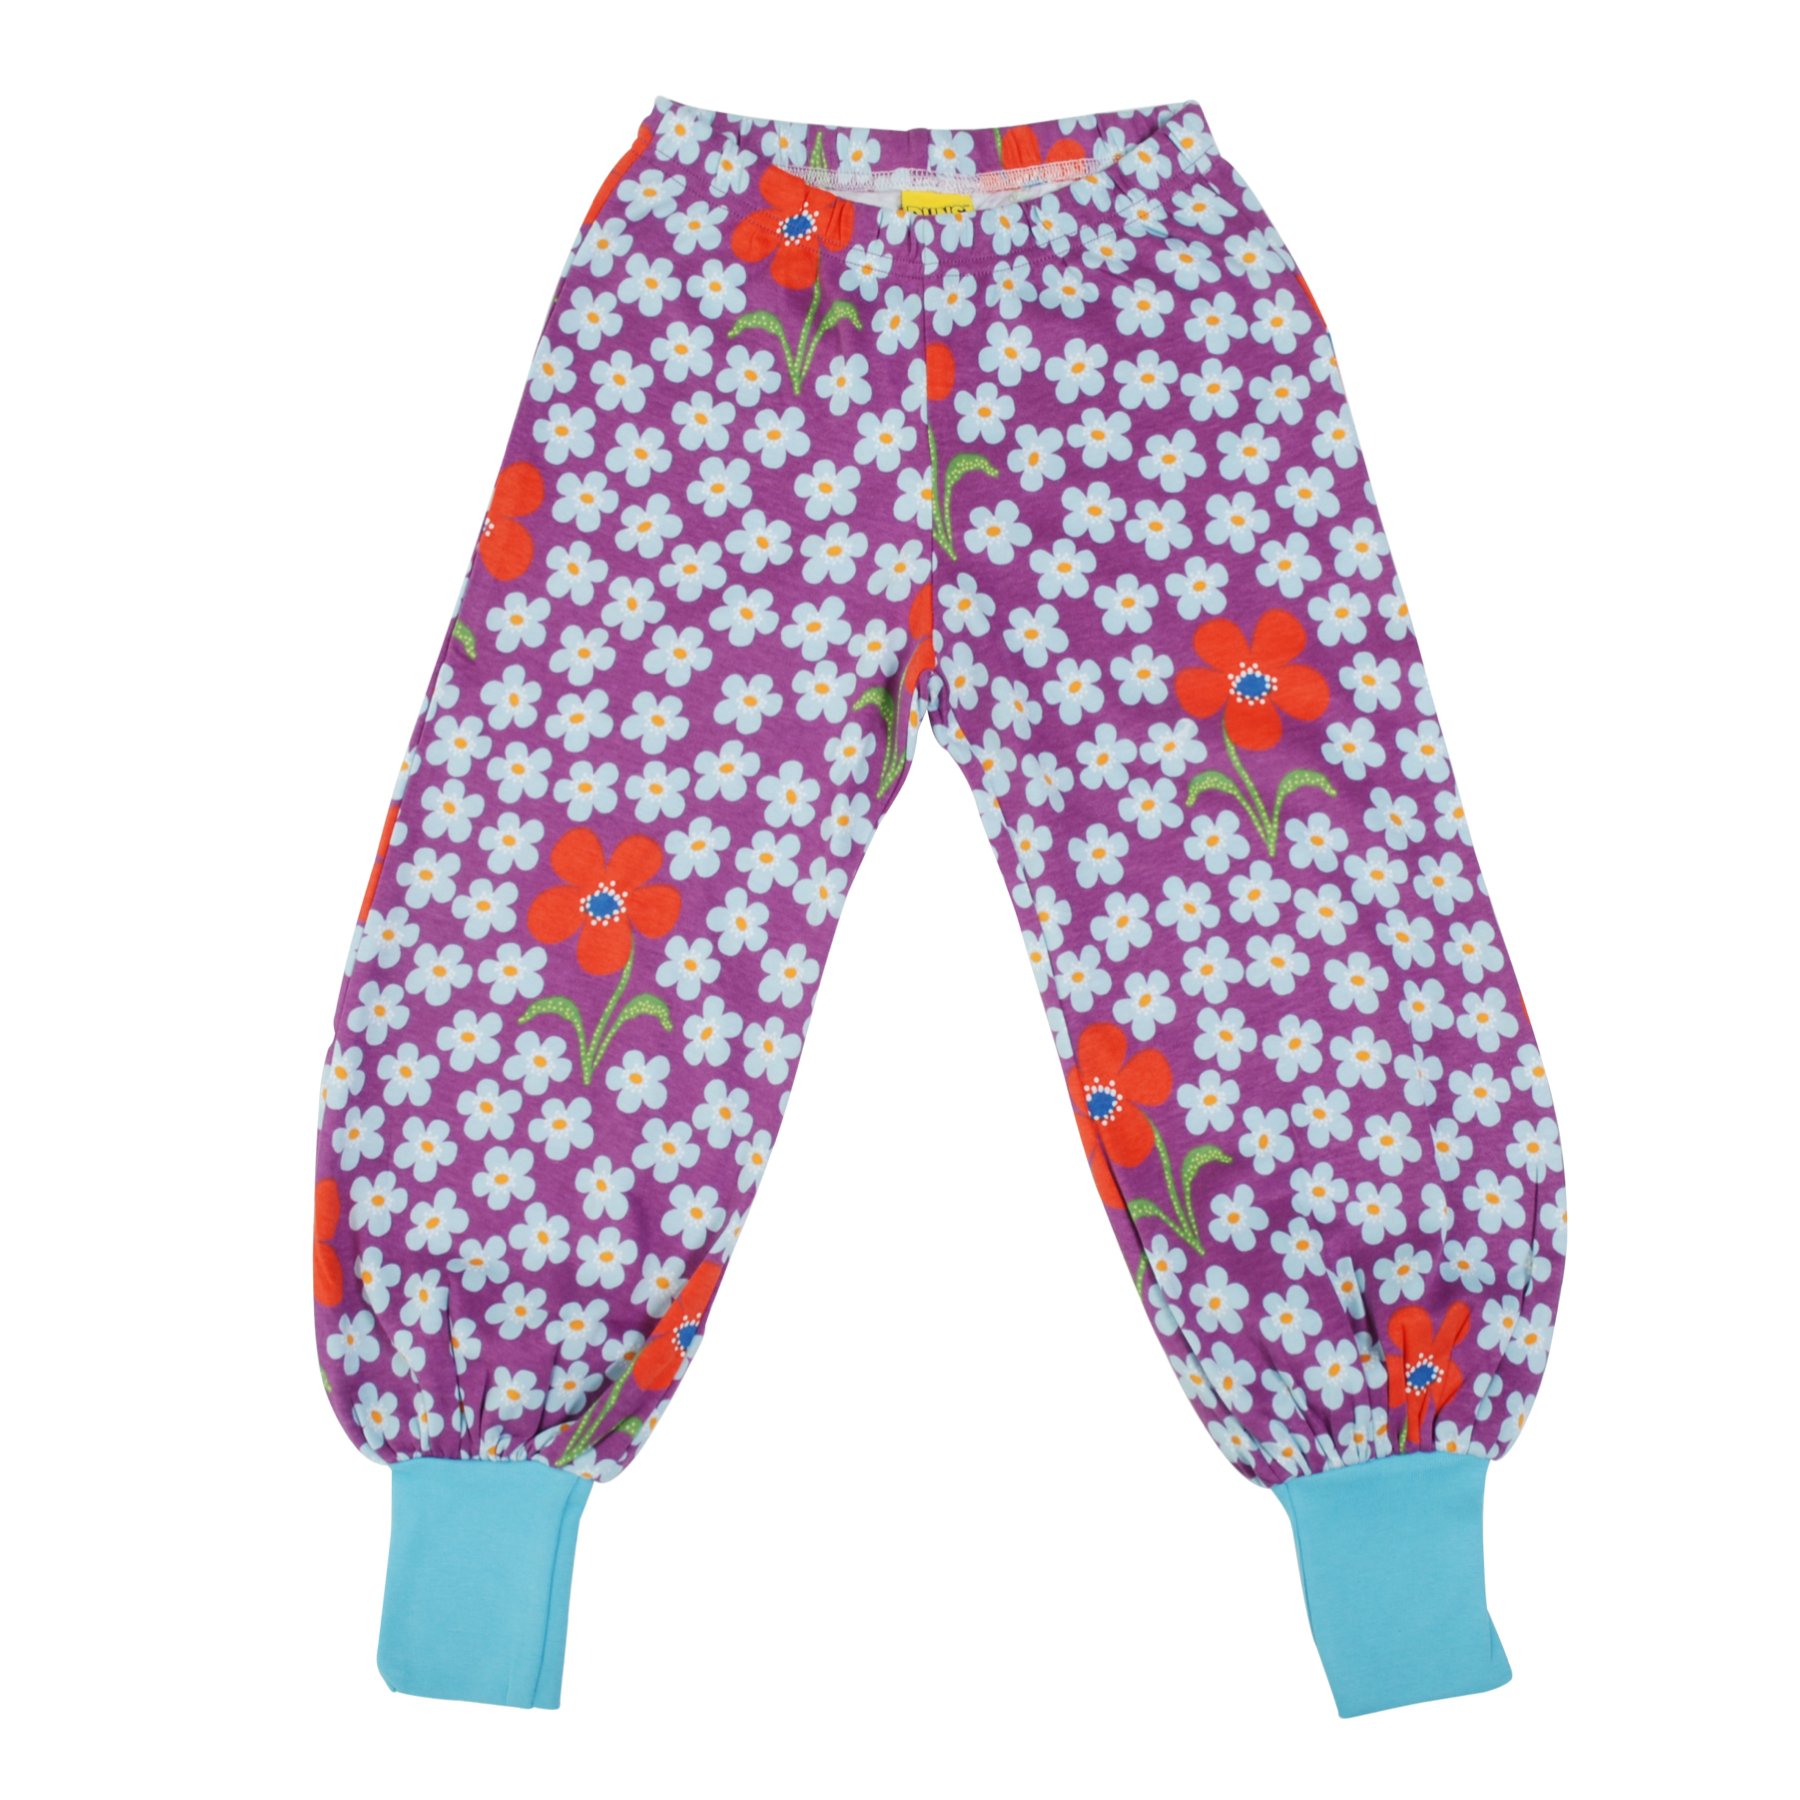 DUNS Sweden Baggy Pants Flower Amethyst,little-tiger-togs.